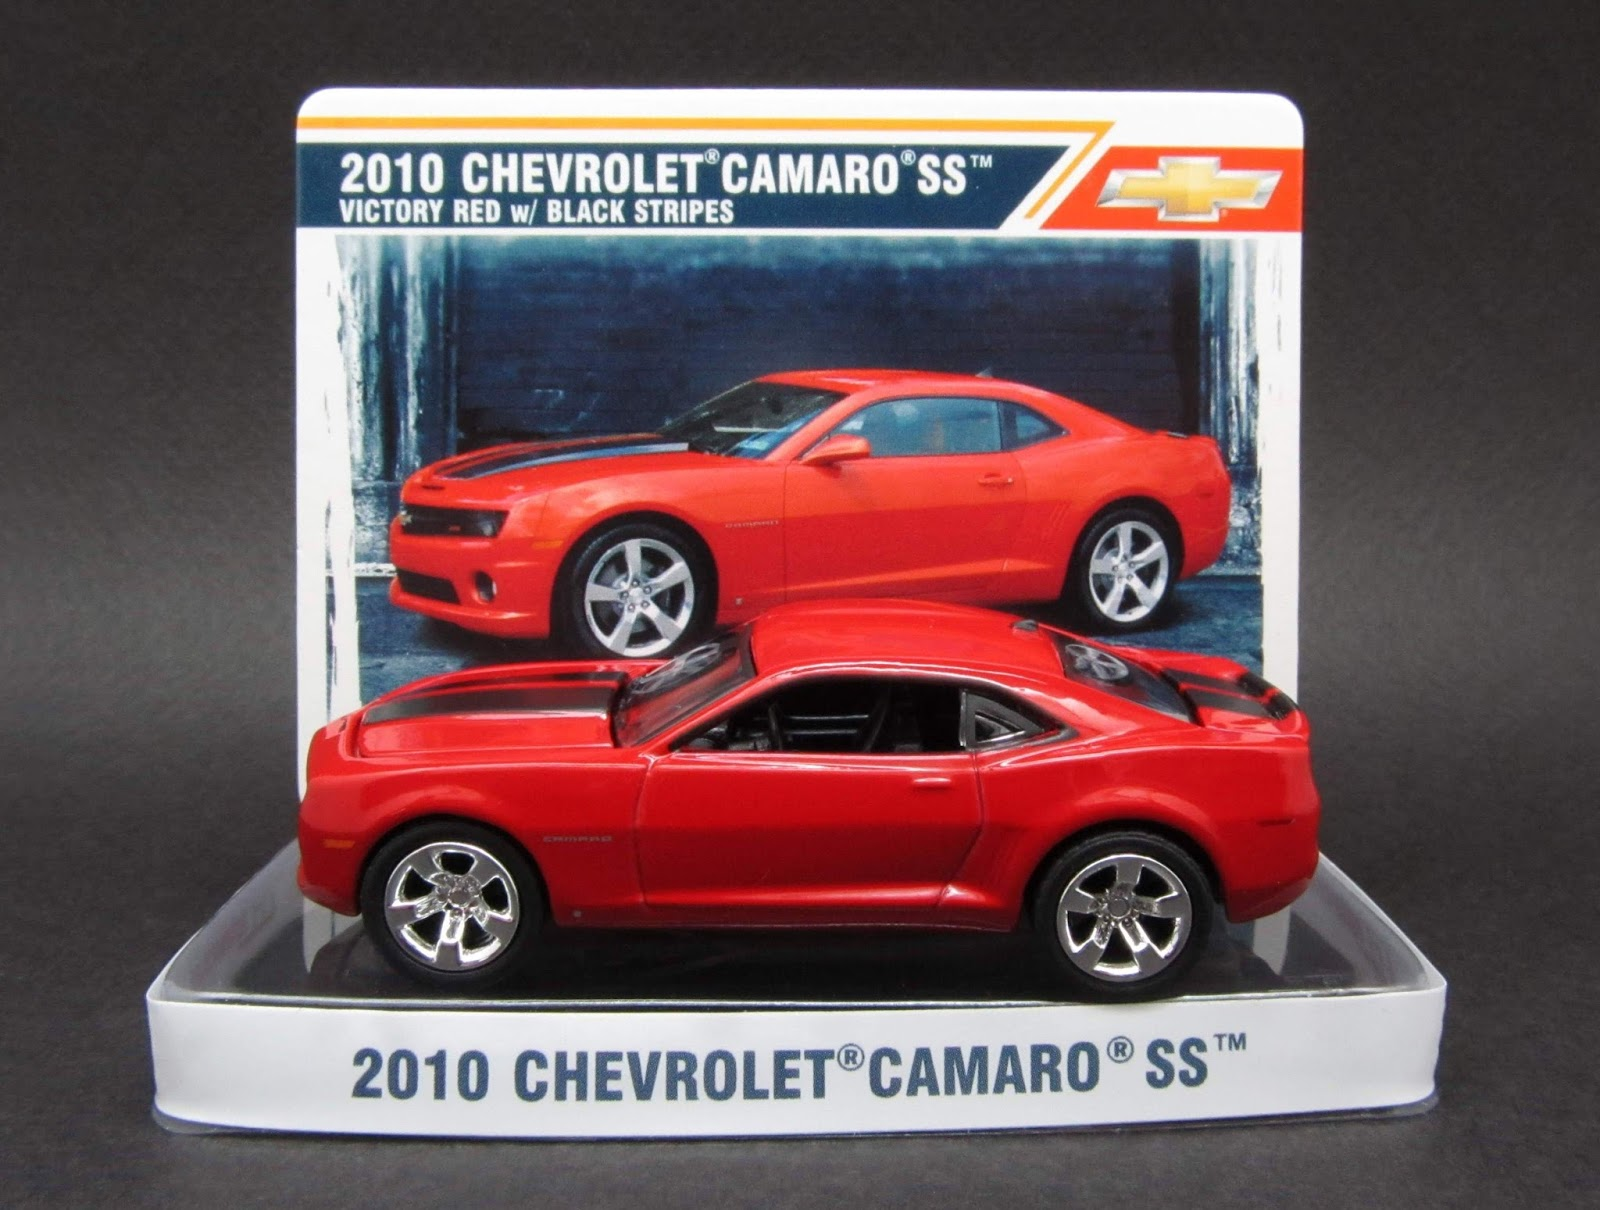 VICTORY RED 2010 CHEVROLET CAMARO SS GREENLIGHT 1:64 SCALE DIECAST METAL CAR